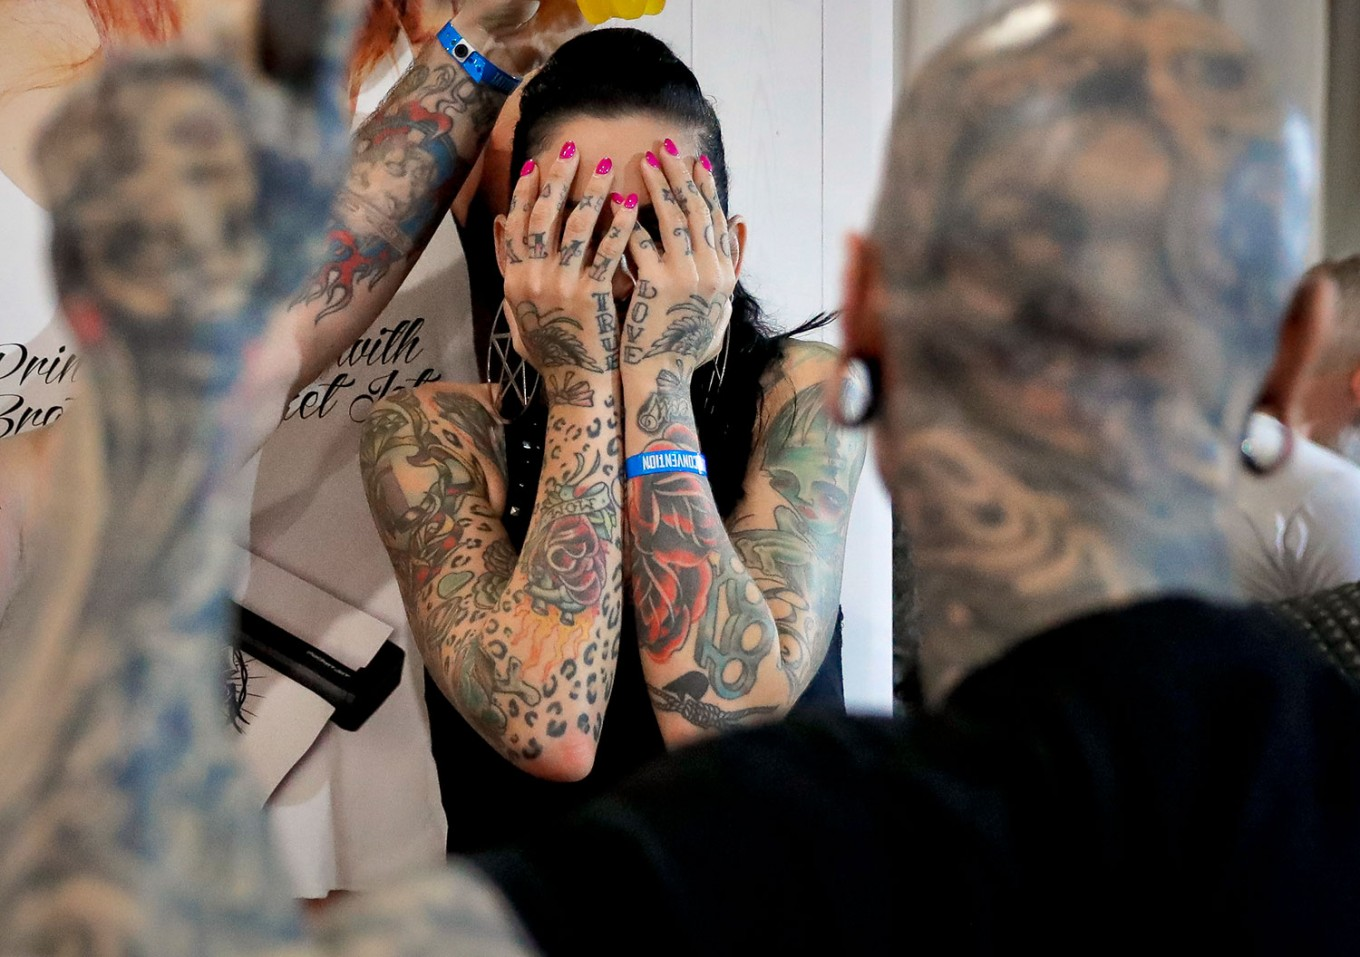 In this picture taken on Sunday, Oct. 16, 2016, a a woman covers her face during the International Tattoo Convention Bucharest 2016 in Bucharest, Romania. More than 100 tattoo and piercing artists brought their skills and art to a three-day convention in the Romanian capital. AP Photo/Vadim Ghirda